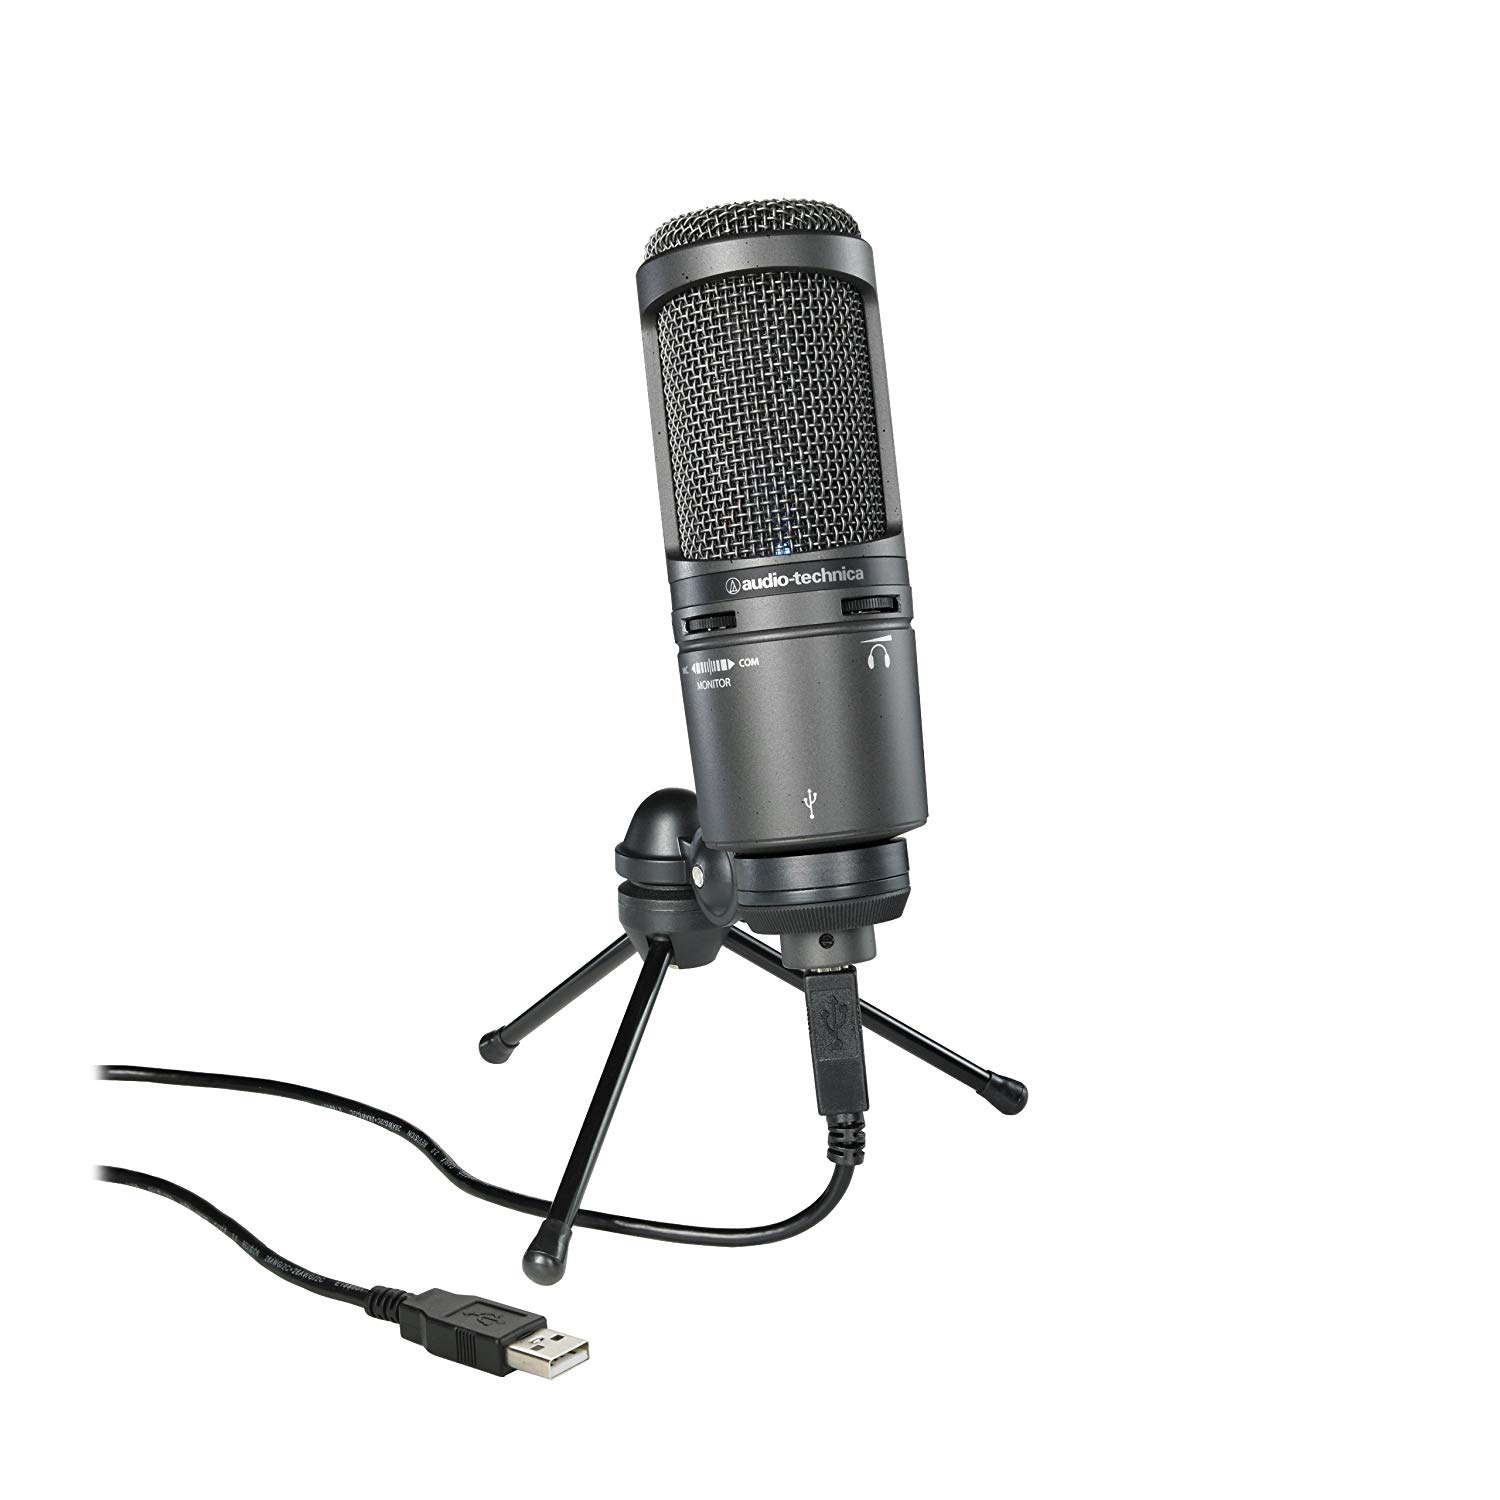 Micro cho Camera Audio Technica AT9934 USB